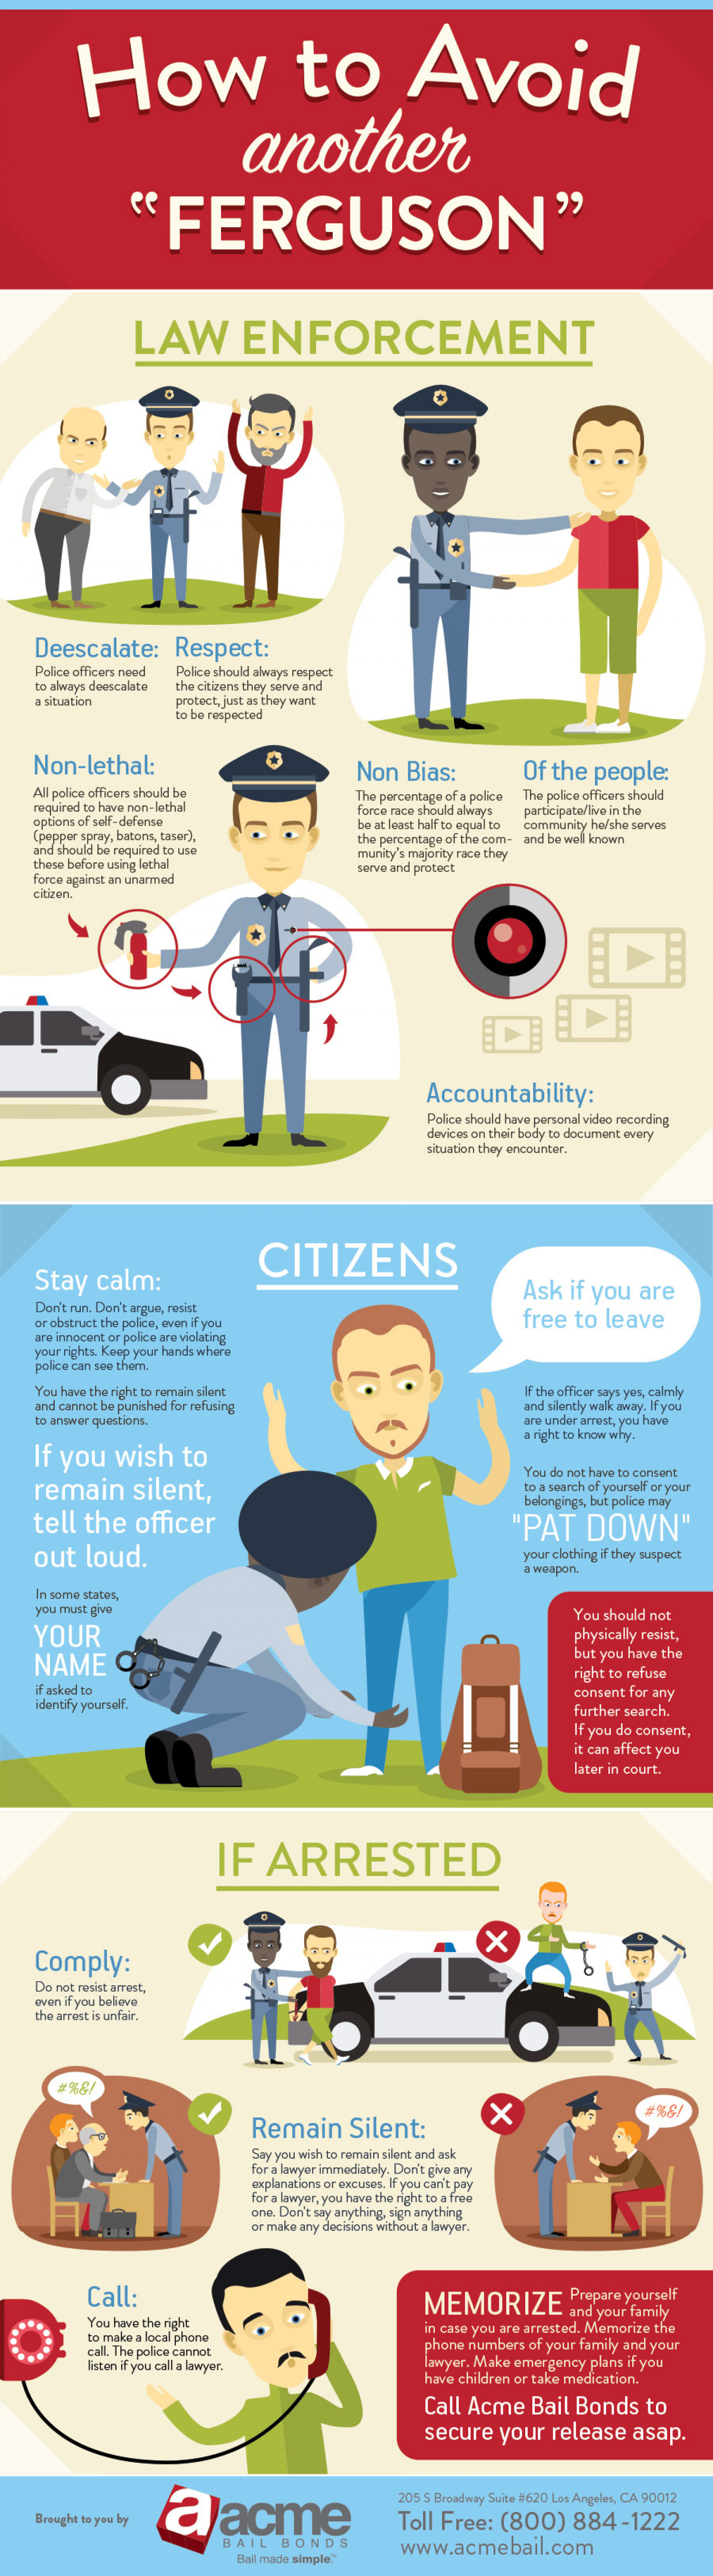 "How to avoid another ""Ferguson"" Infographic"